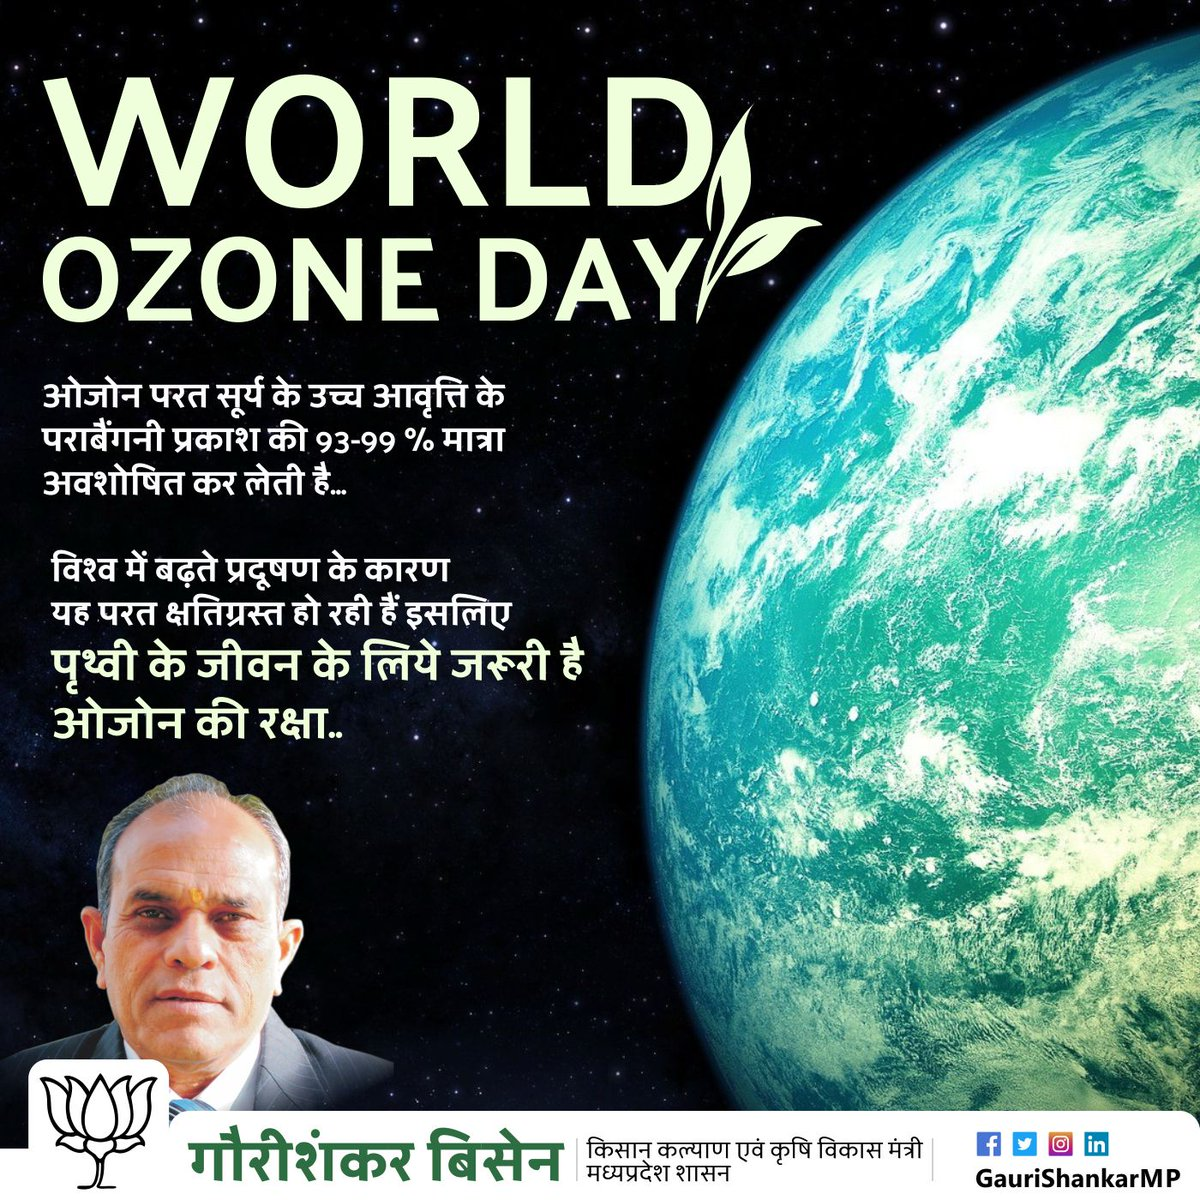 #WorldOzoneDay